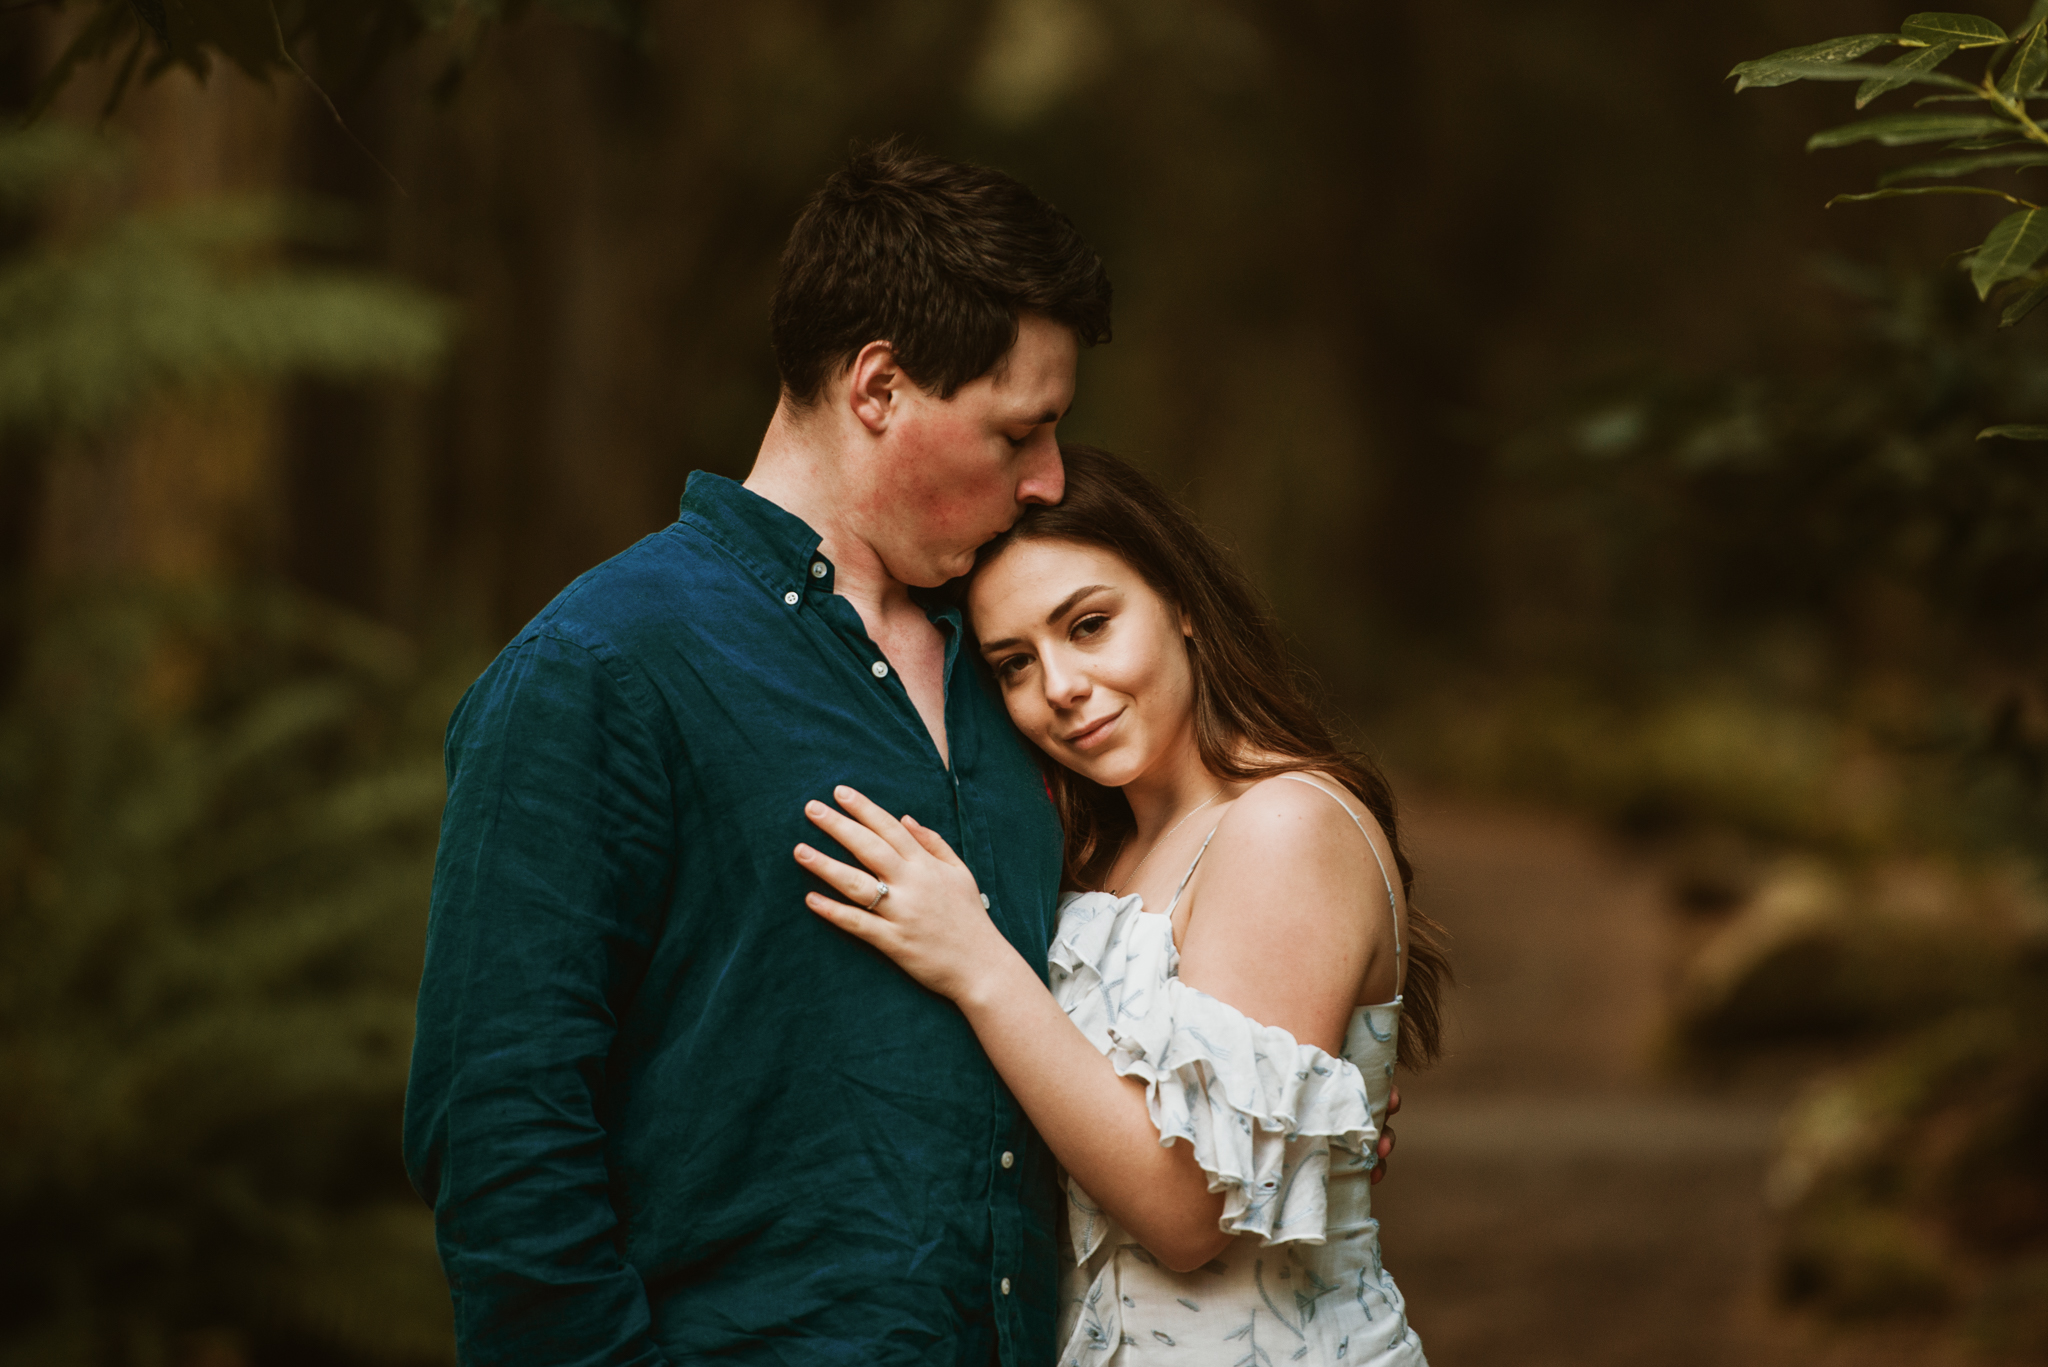 launceston couples photographer-39.jpg